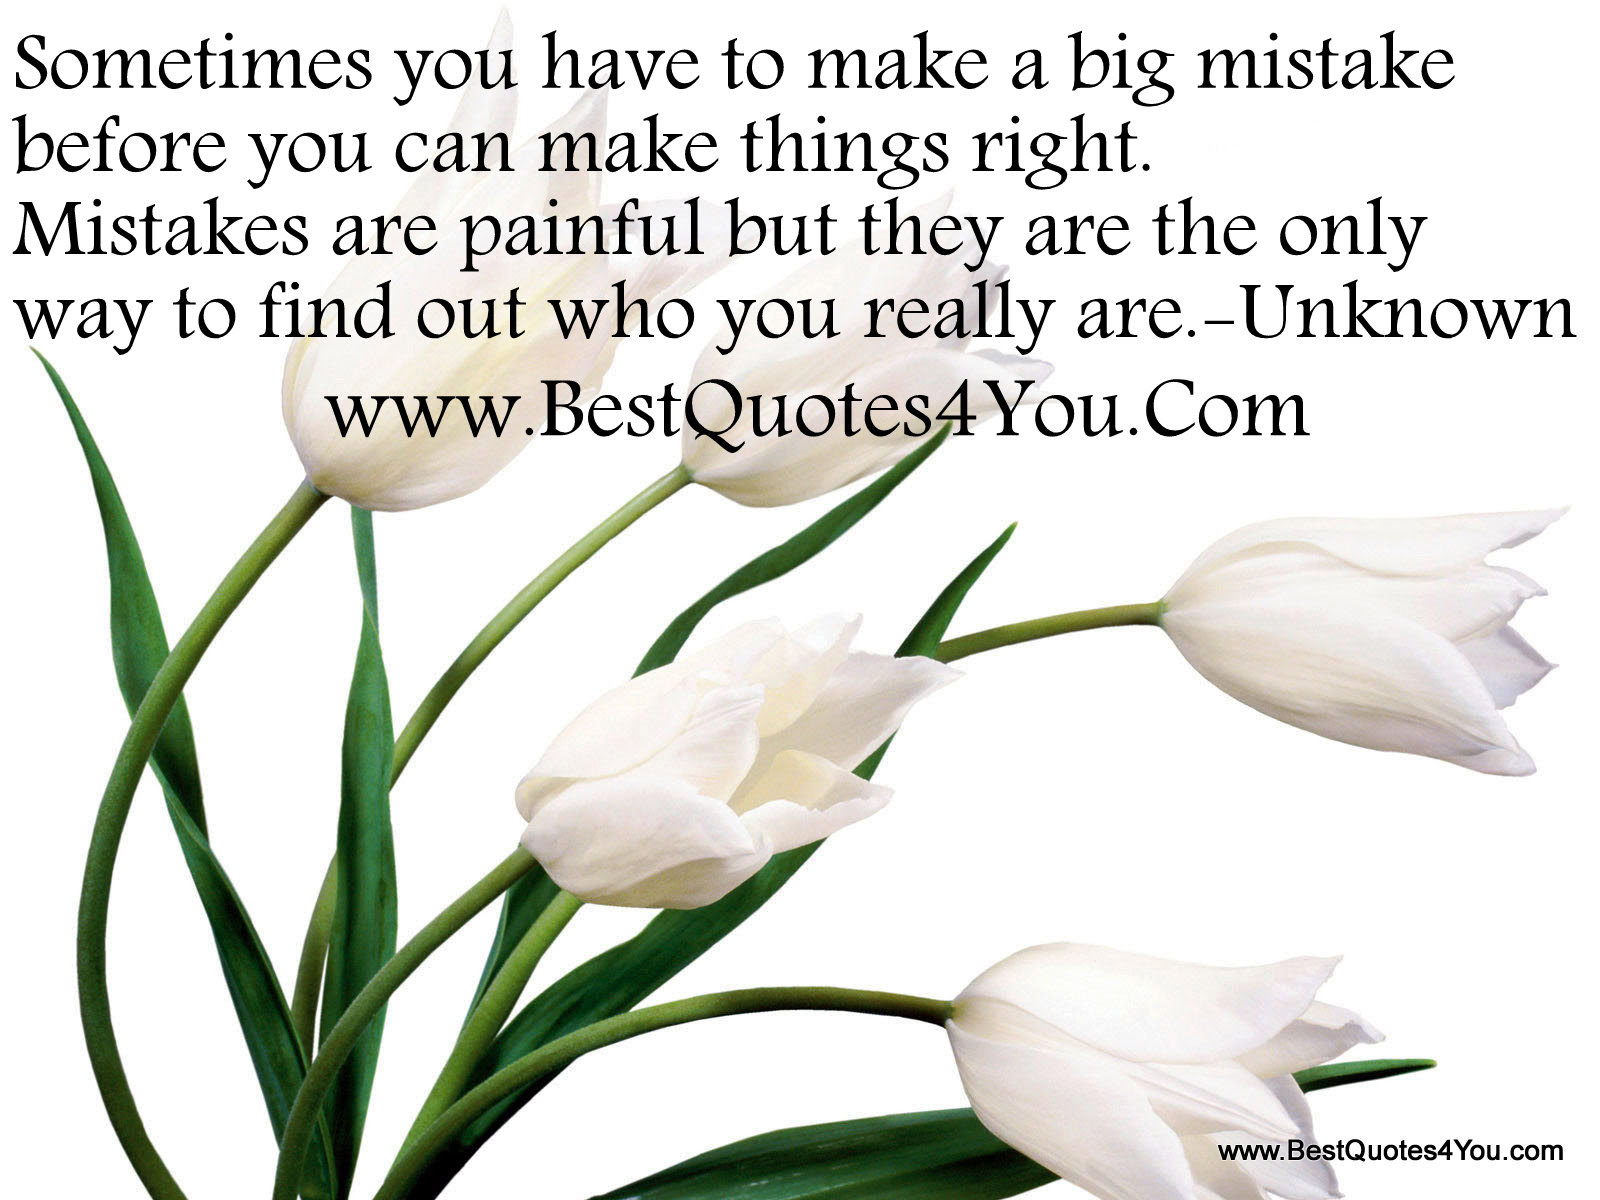 Sometimes You Have To Make A Big Mistake Before You Can Things Right